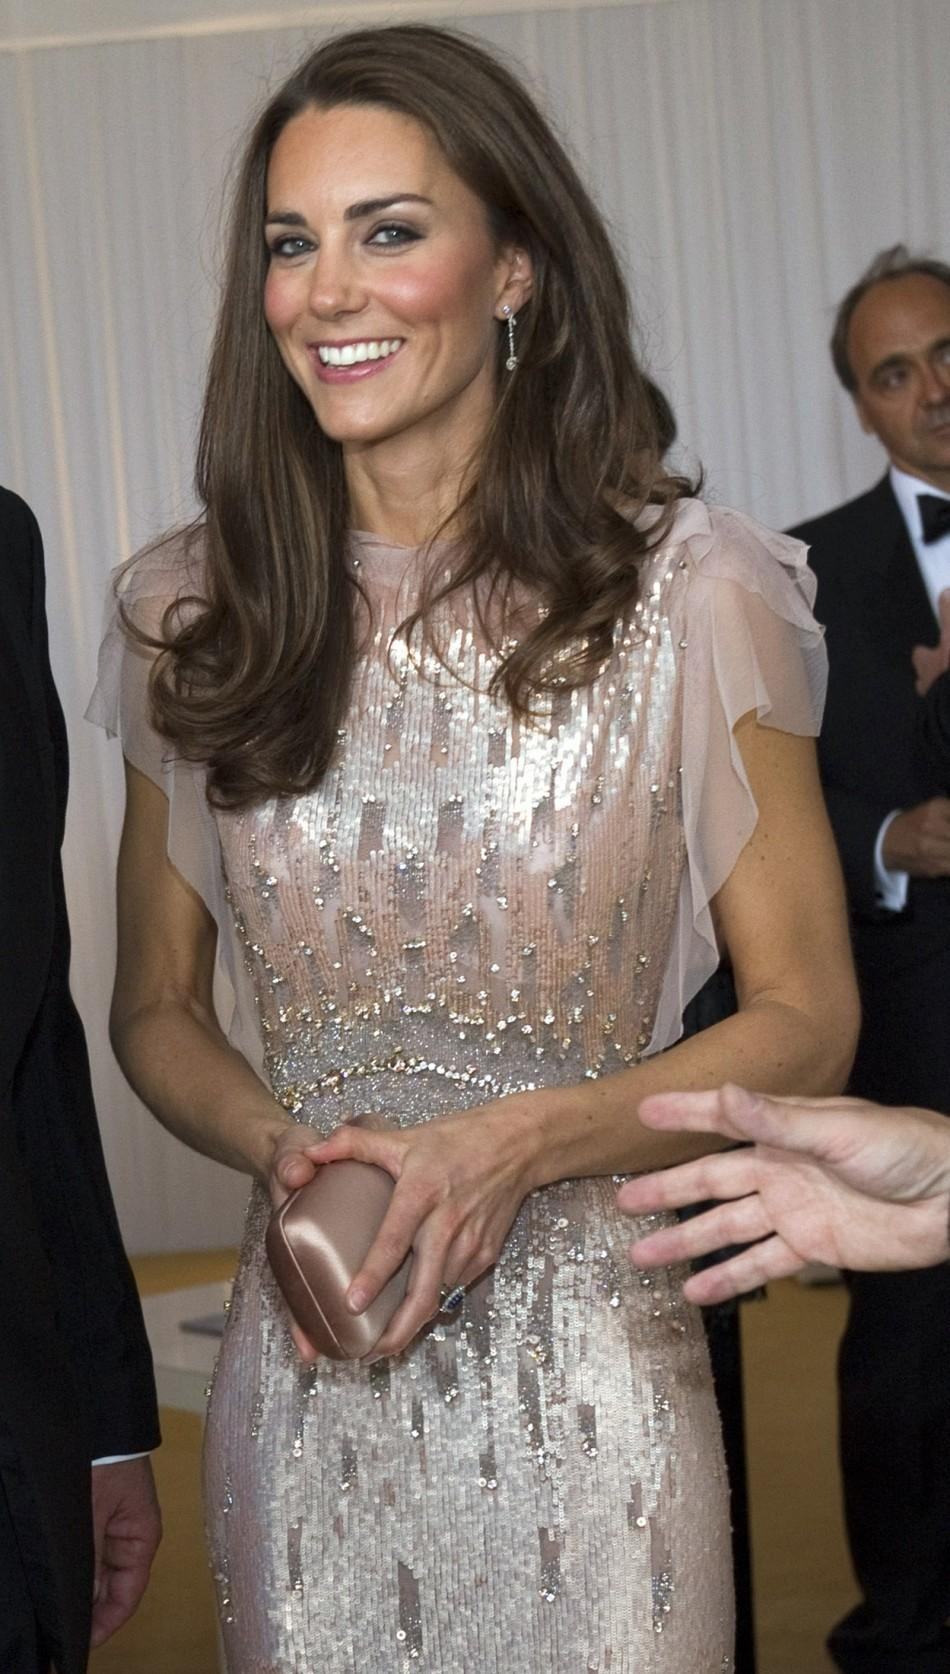 Britain's Catherine, Duchess of Cambridge arrives at ARK gala dinner at Kensington Palace in London